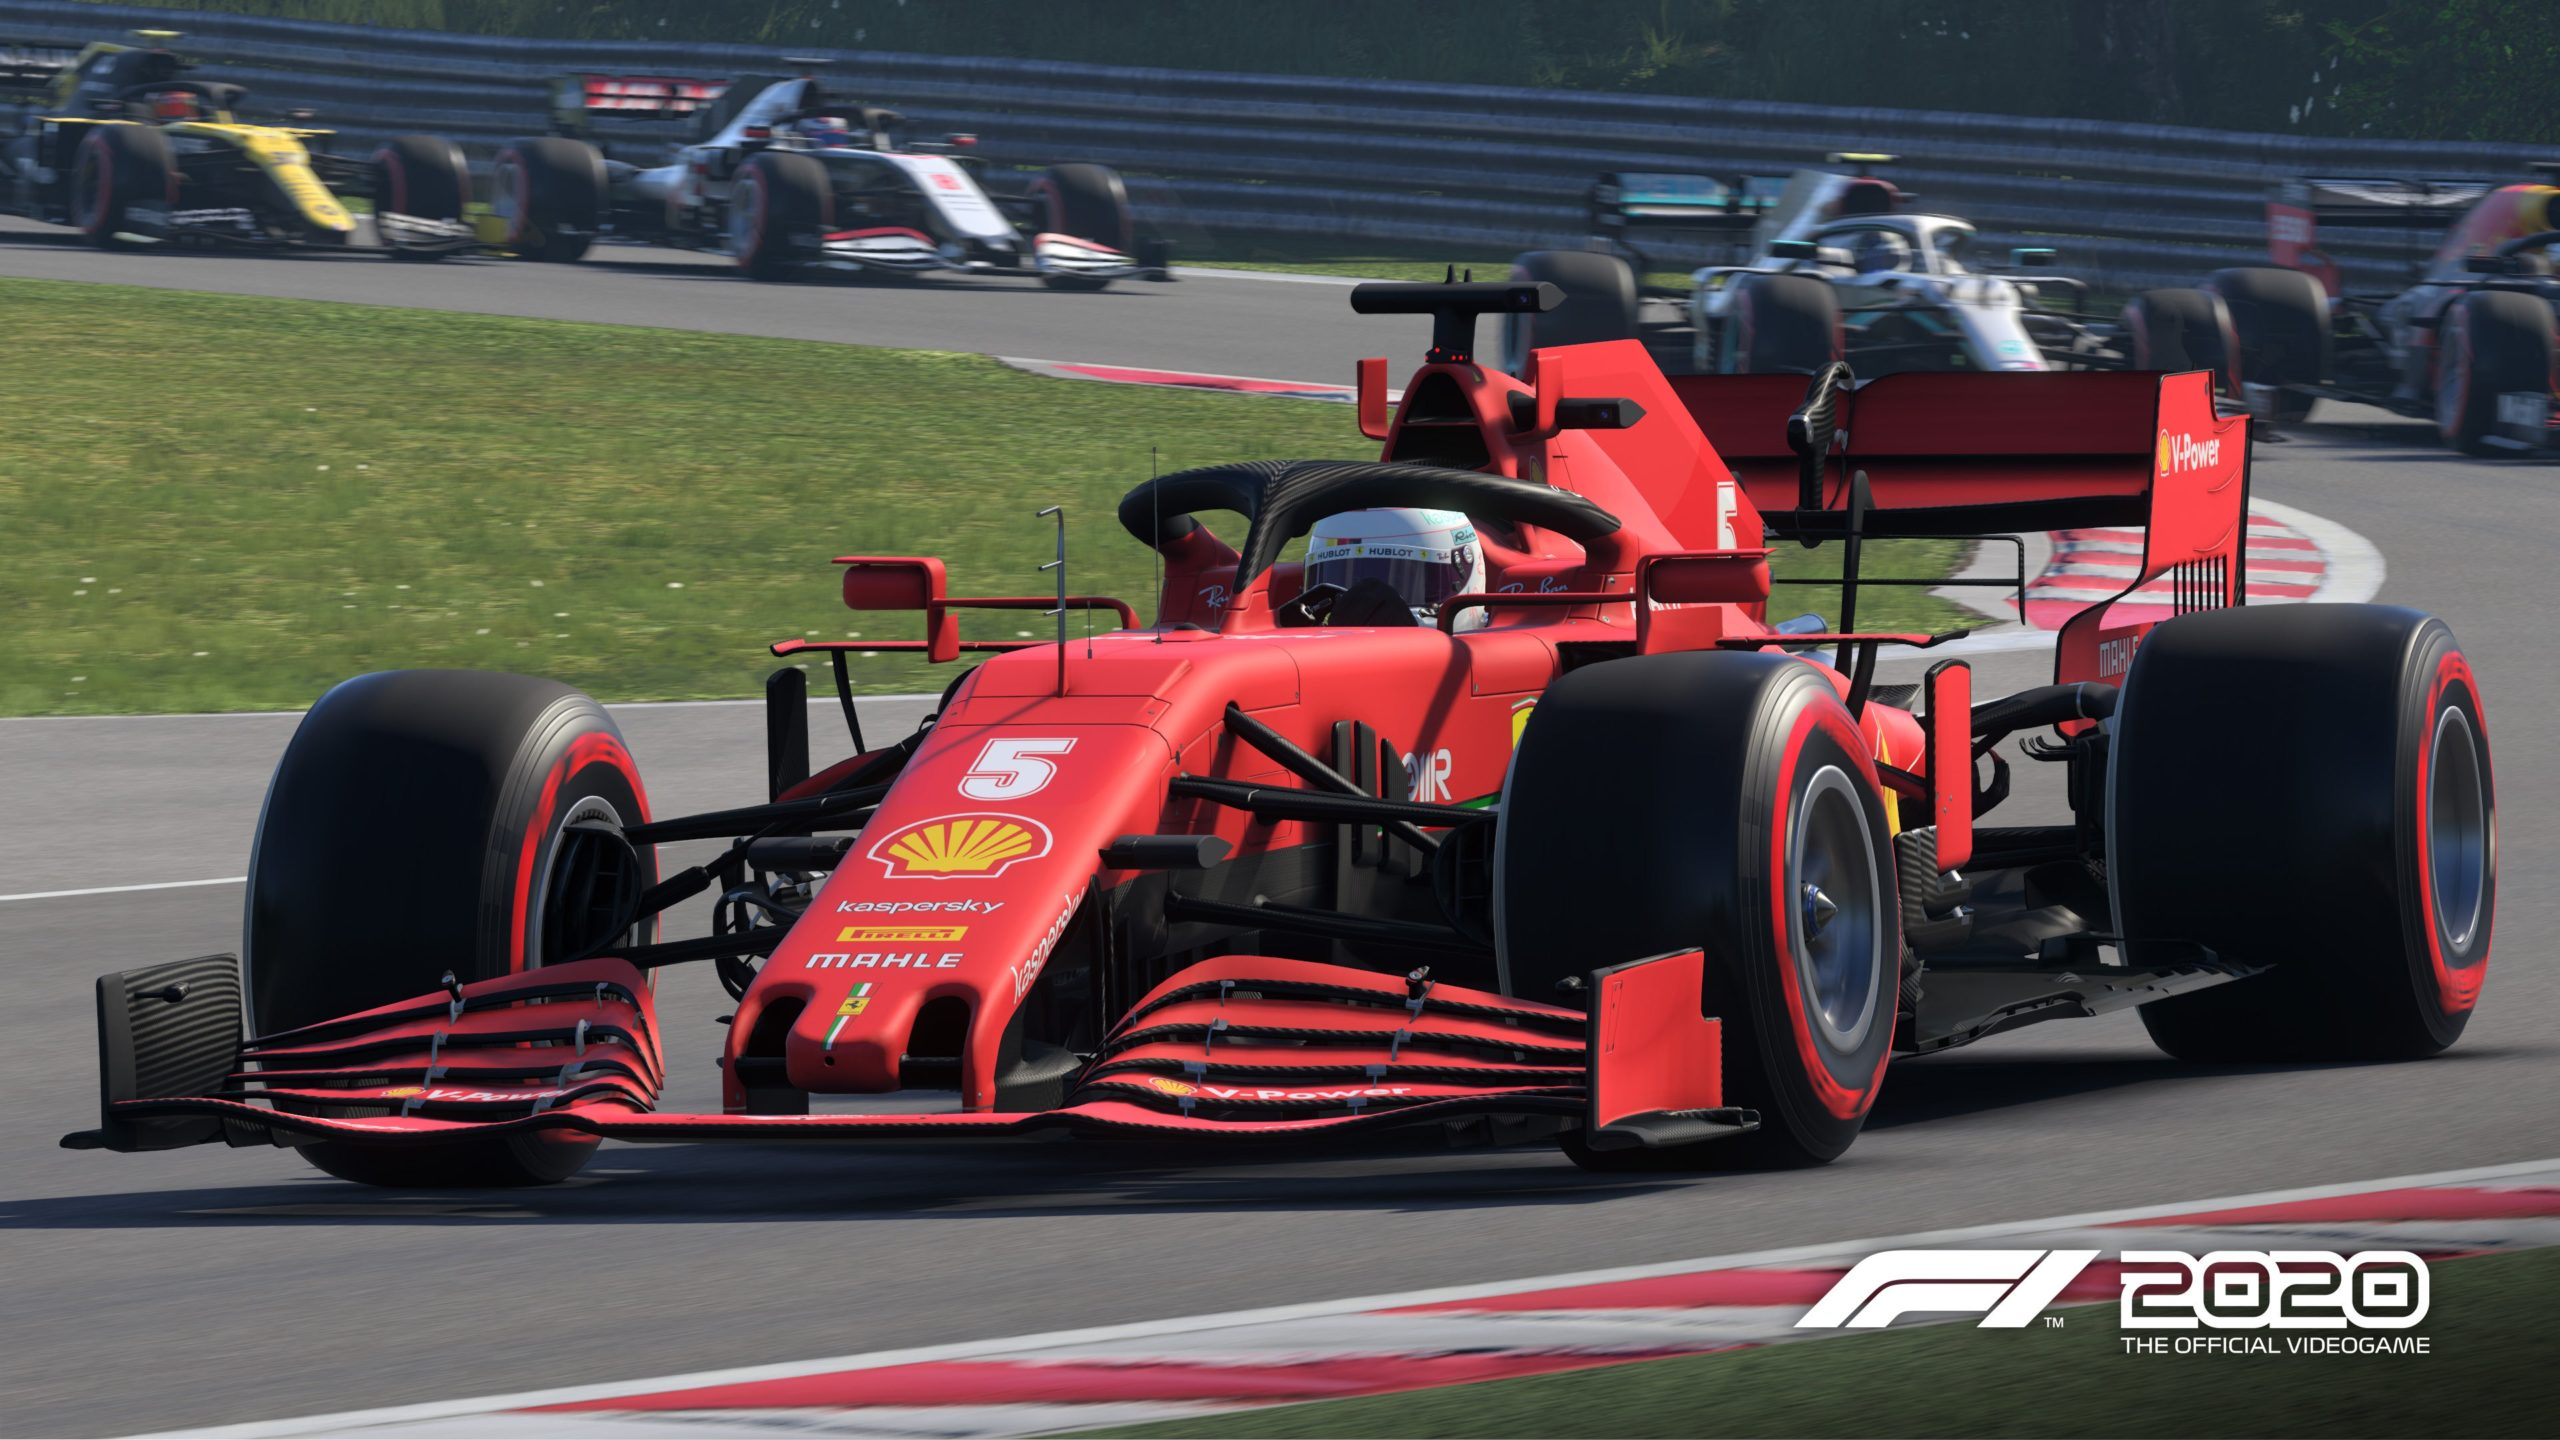 F1_2020_Hungary_Screen_02_4K-scaled F1 2020 – Plenty of New Previews